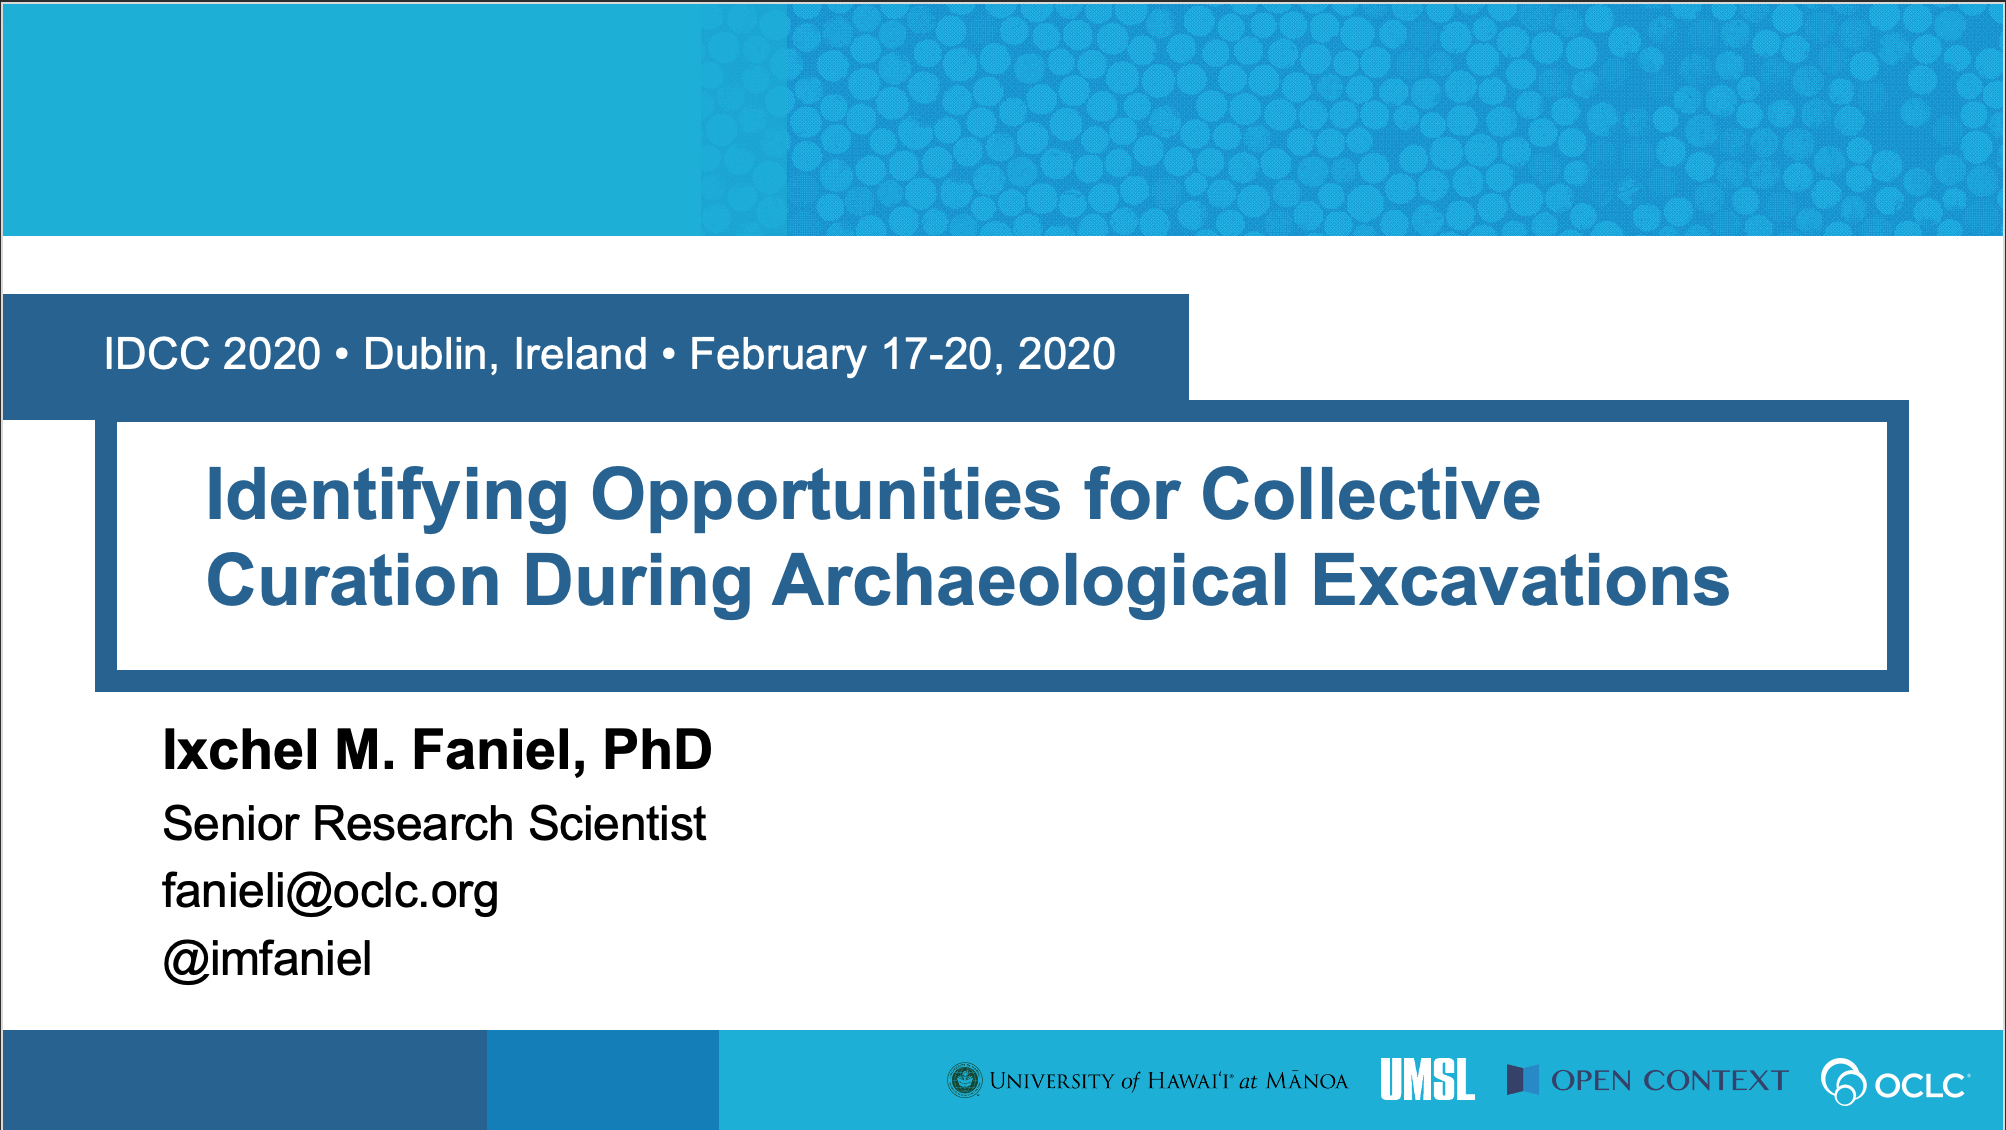 Identifying Opportunities for Collective Curation During Archaeological Excavations